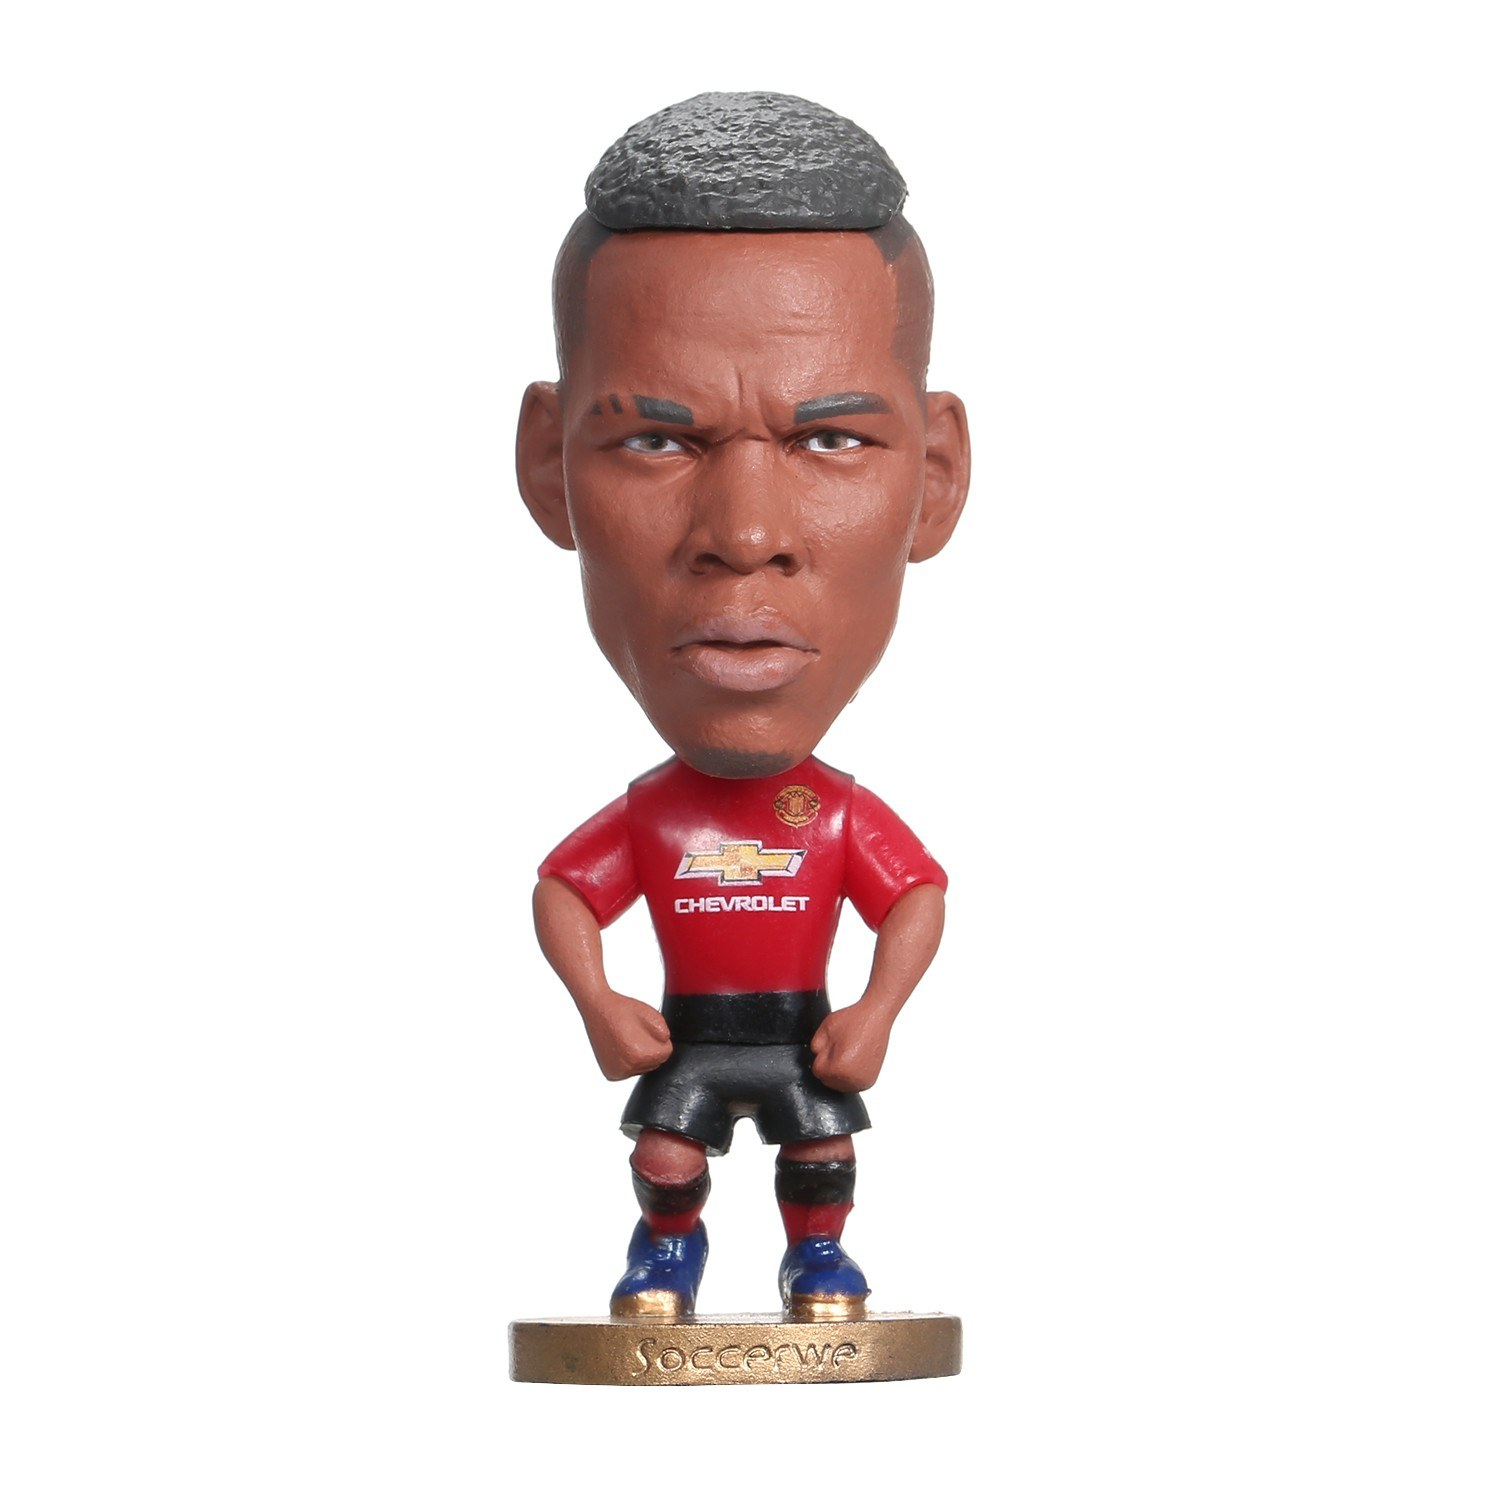 Classic Soccer Star Hand Model Doll Decoration Vinyl Action Figure Collection Toy Gift for Vehicle Home Office Decoration